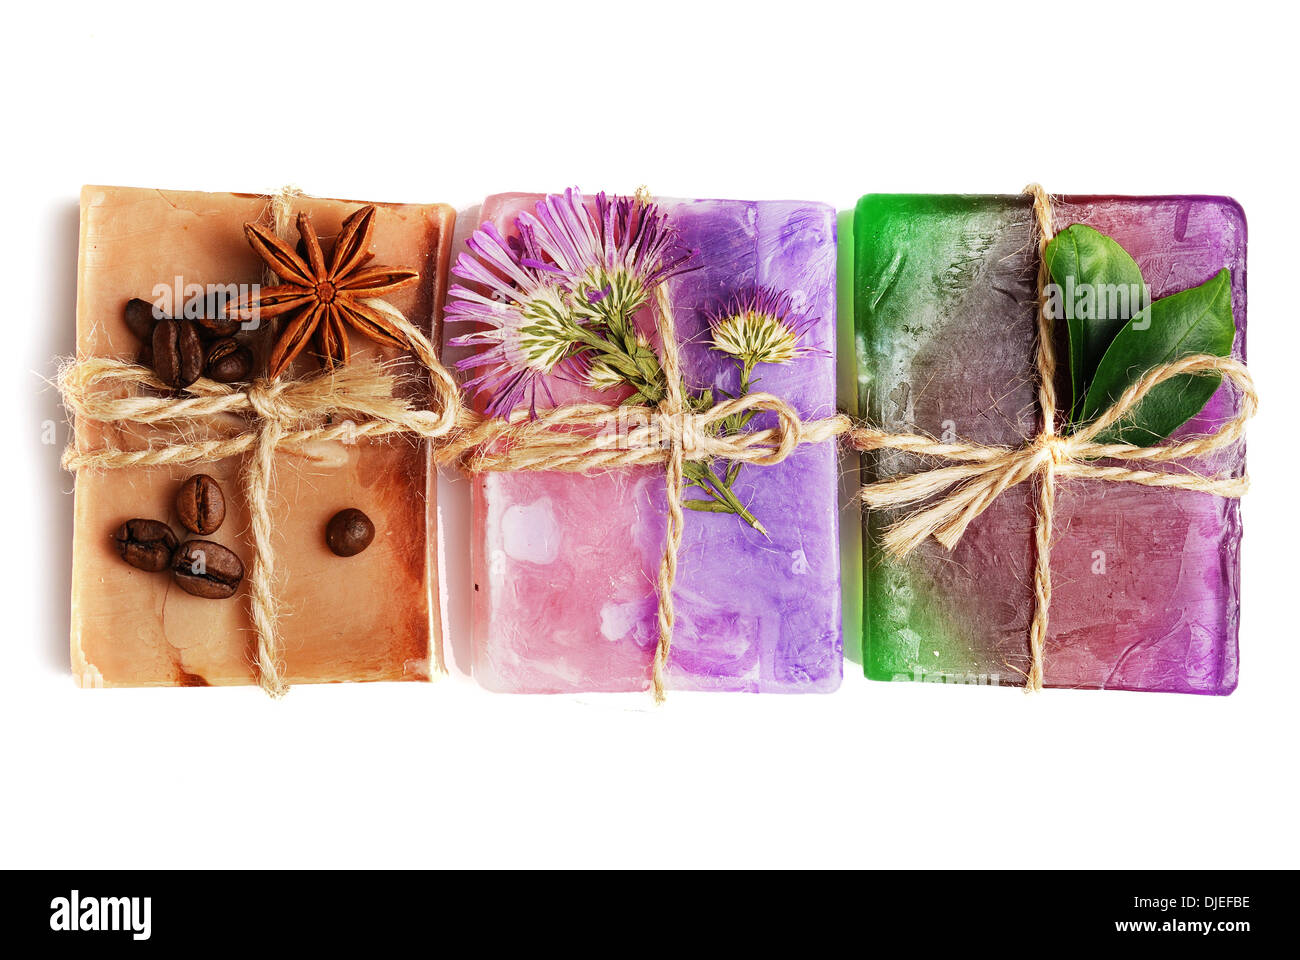 Spa setting with natural soap and sea salt closeup - Stock Image